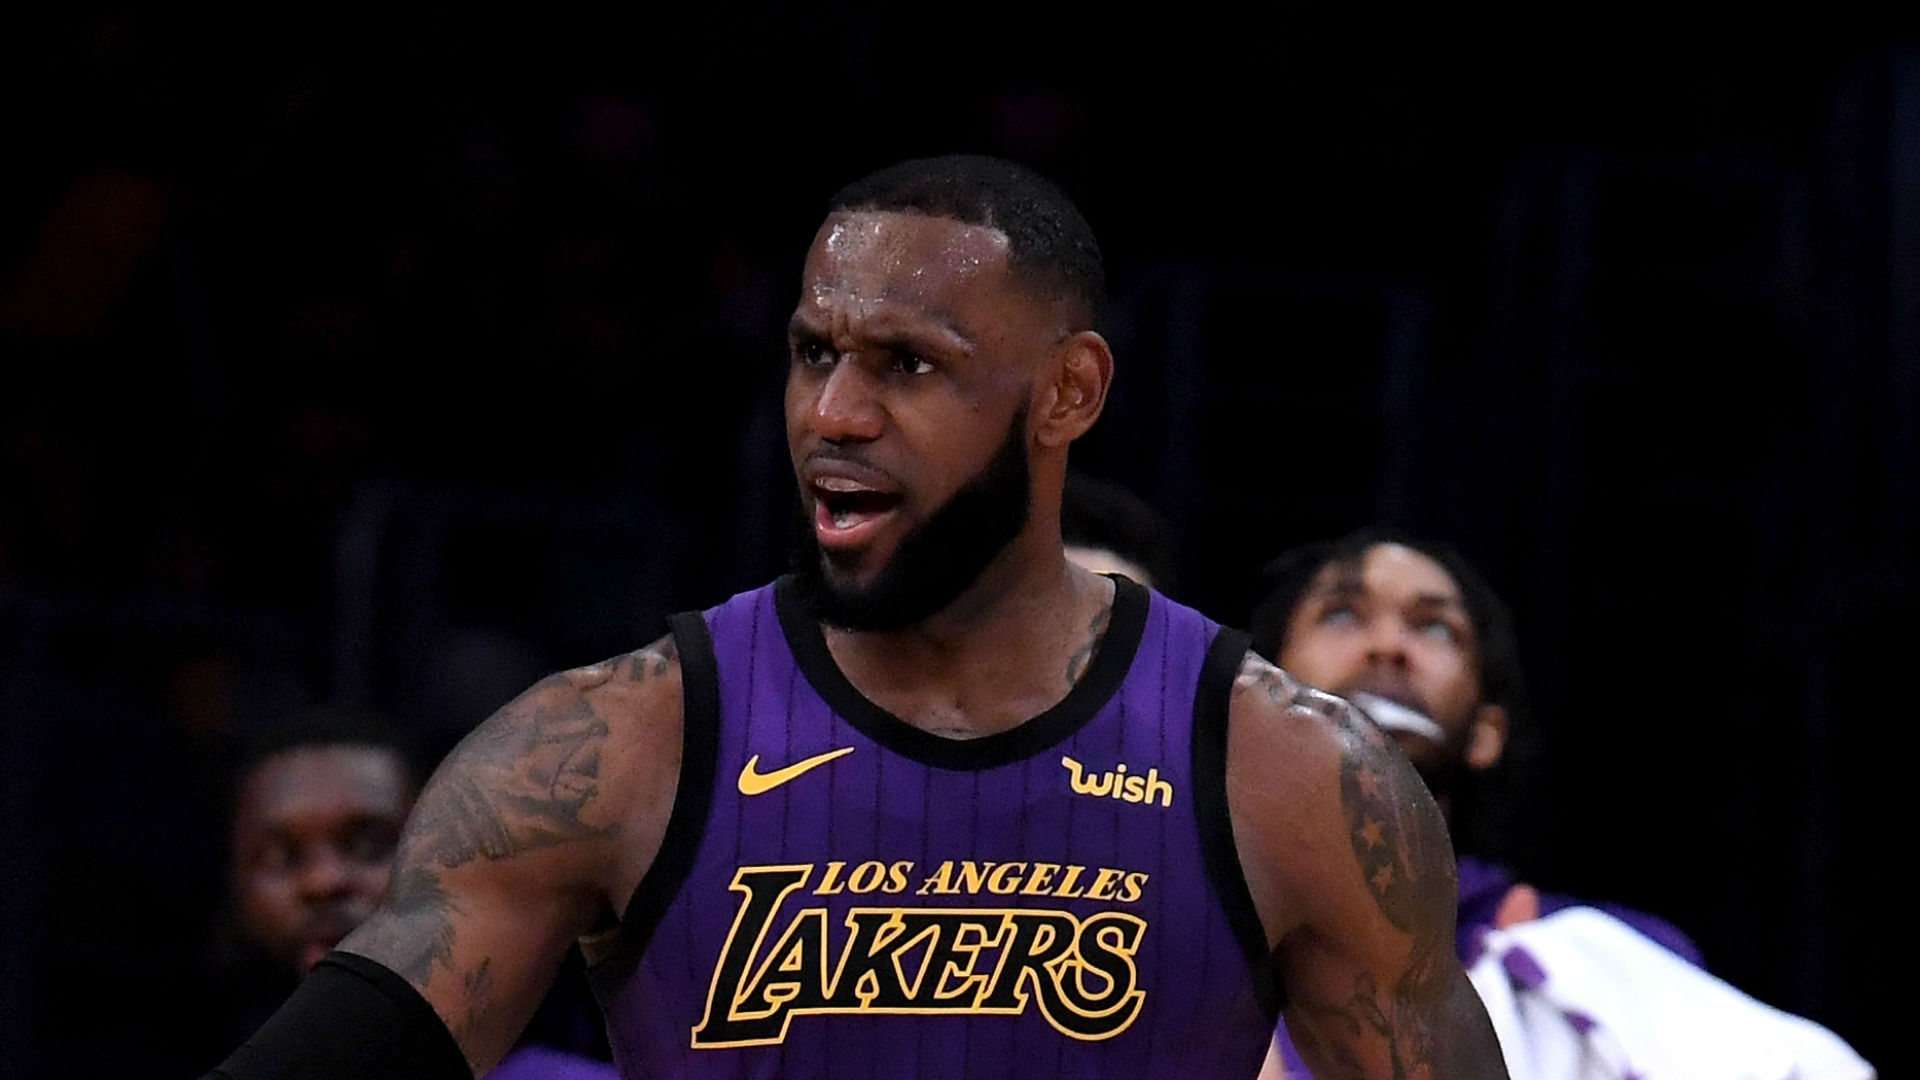 LeBron made 51 points 'look easy', says Walton